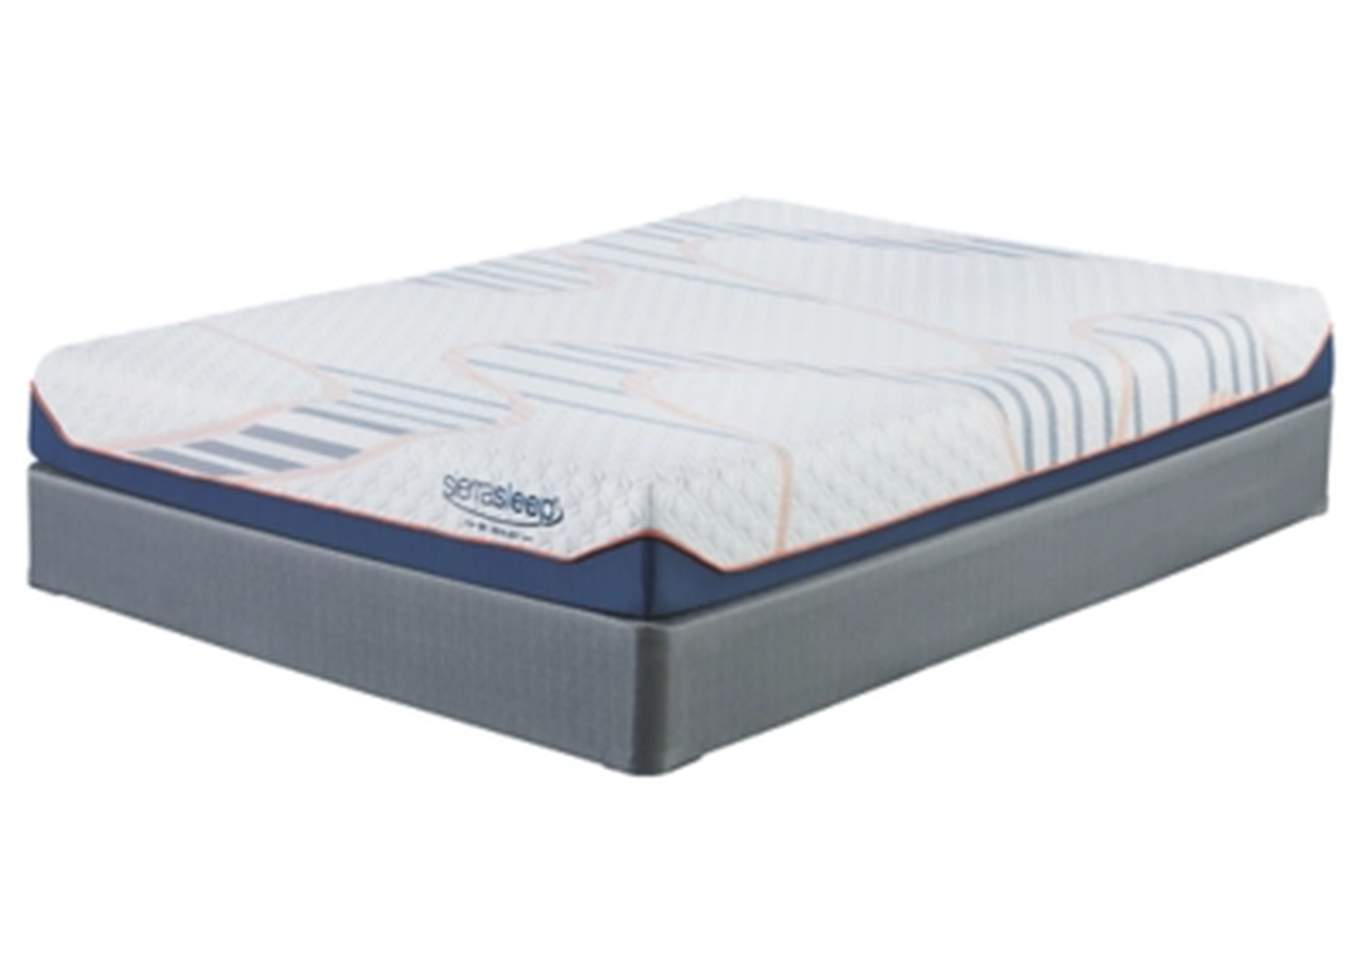 8 Inch MyGel King Mattress,Sierra Sleep by Ashley